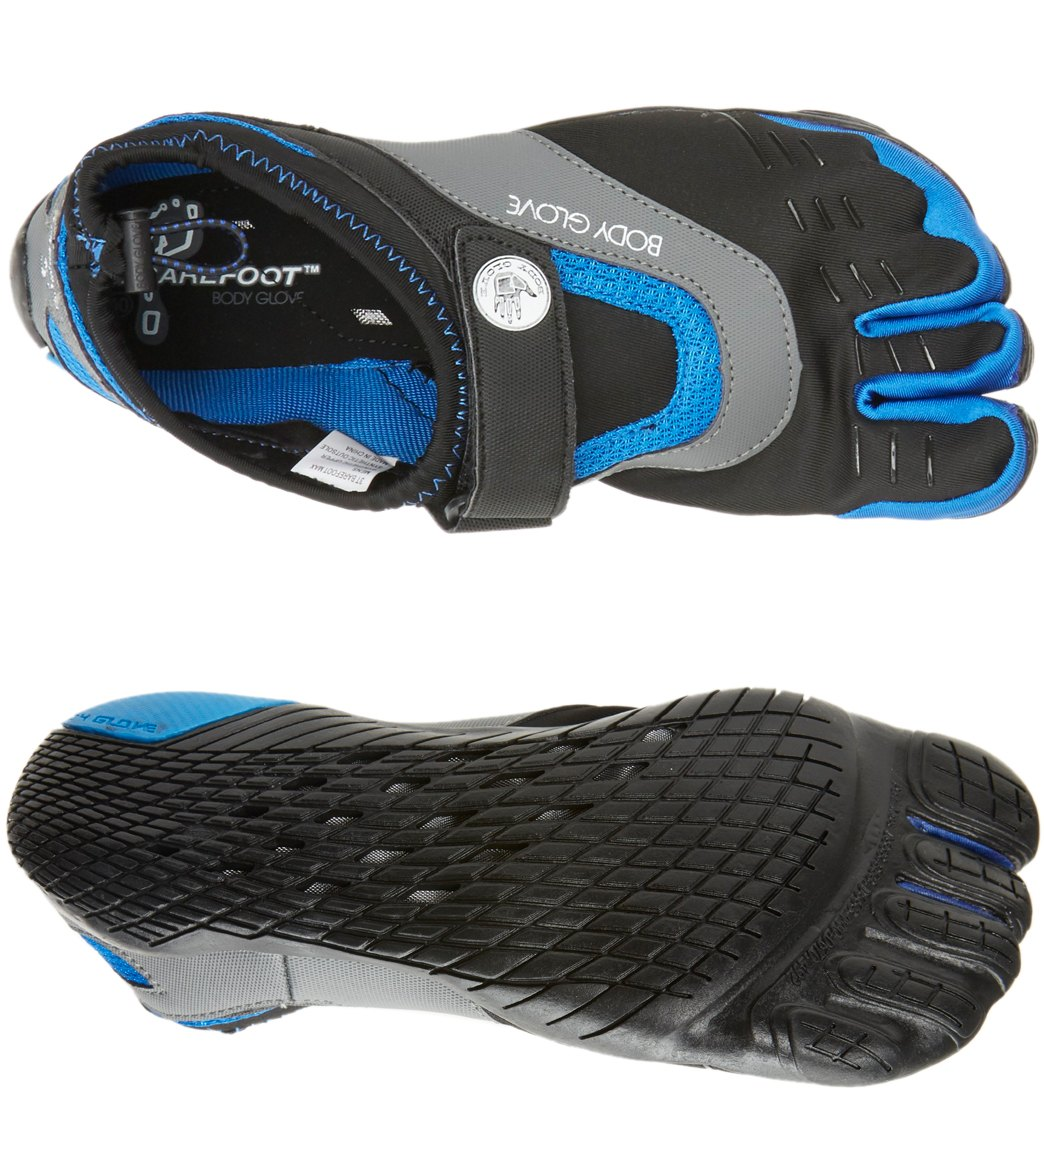 ebc3c4ee5eb7 Body Glove Men s 3T Max Water Shoe at SwimOutlet.com - Free Shipping